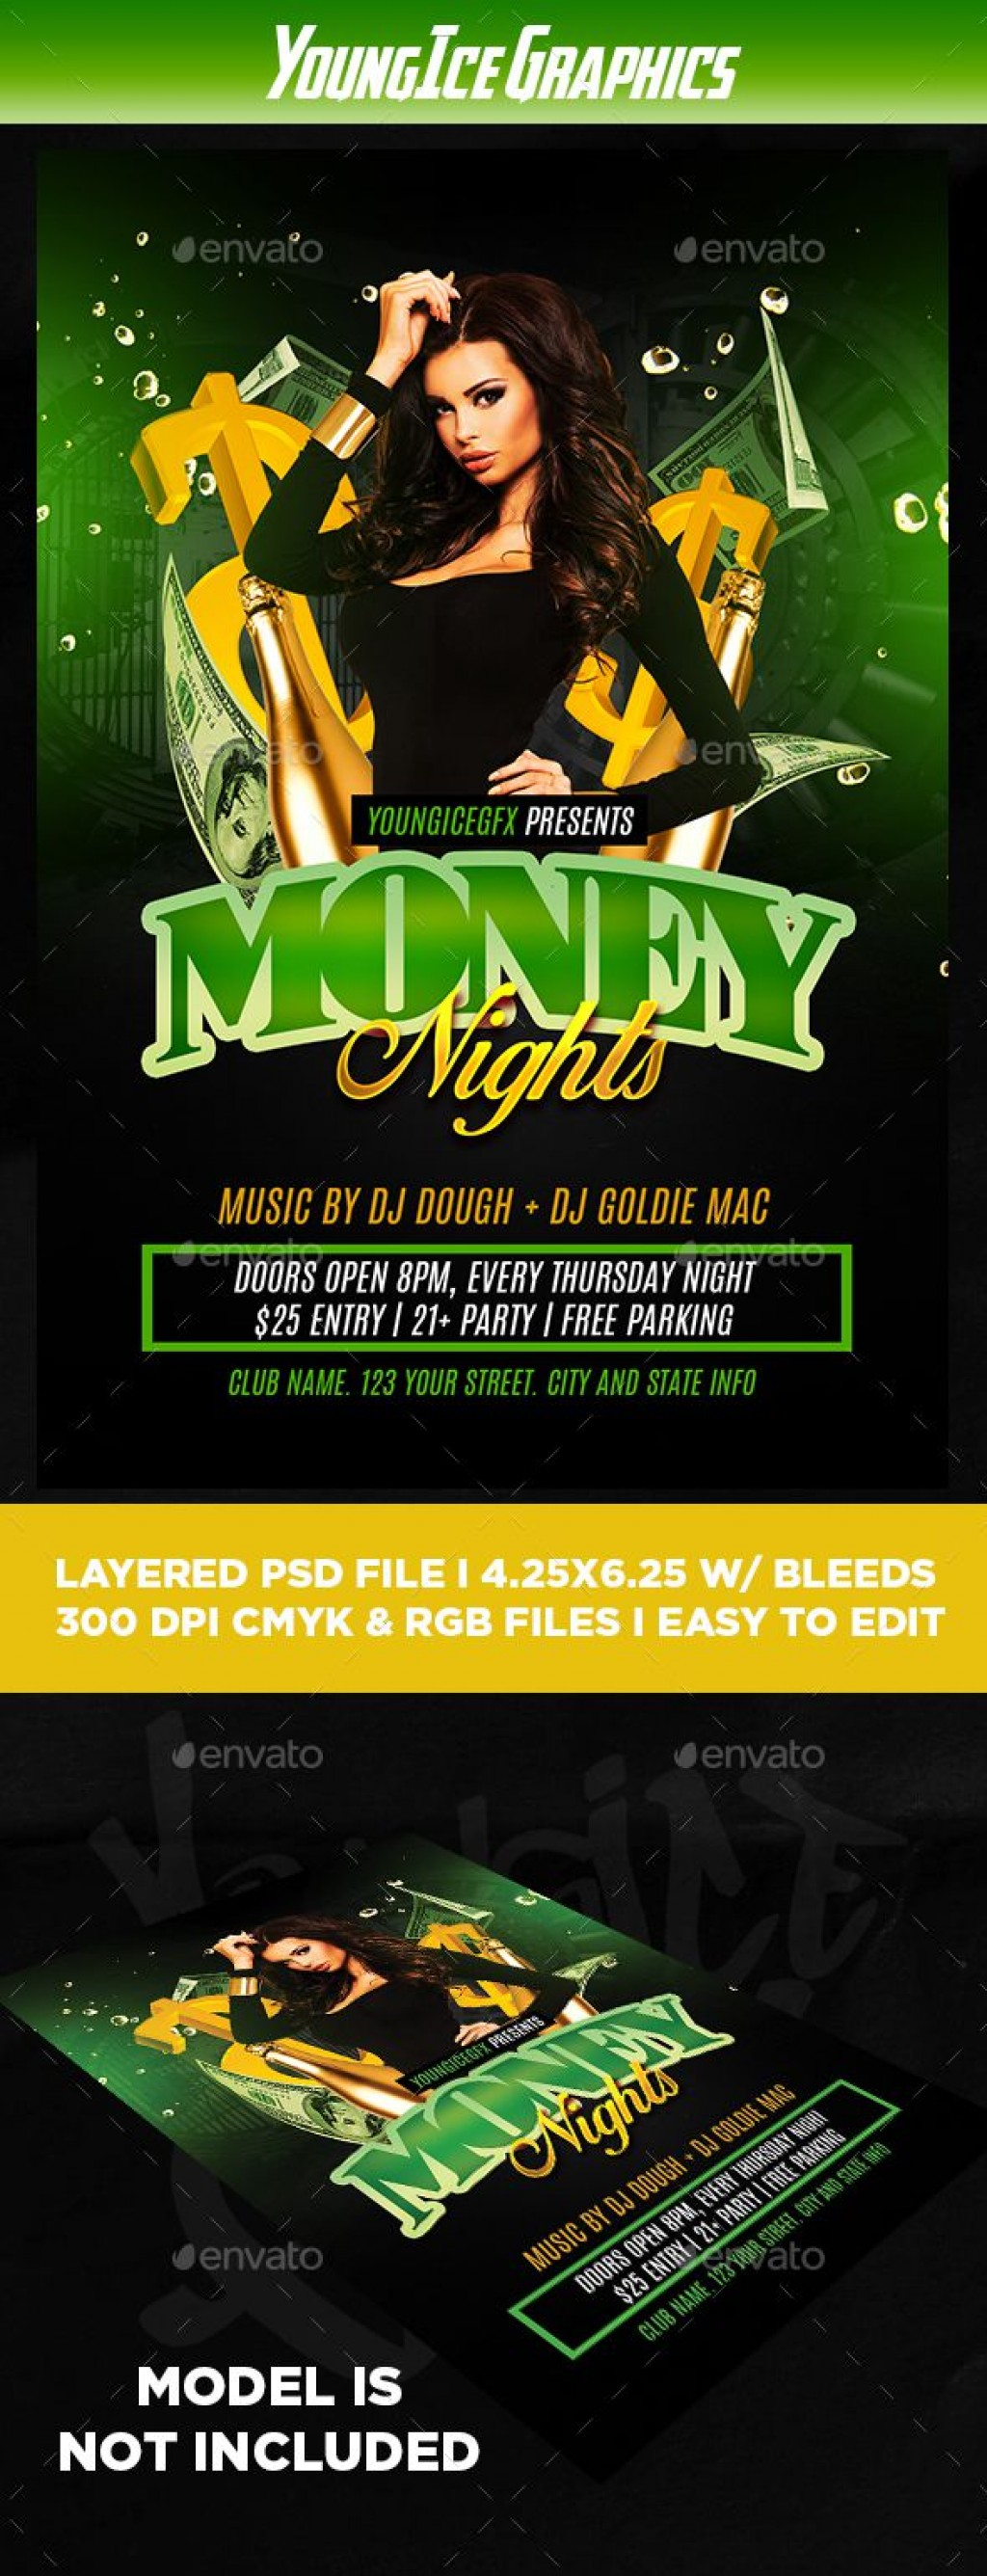 009 Dreaded Free Party Flyer Template For Mac Highest Clarity Large